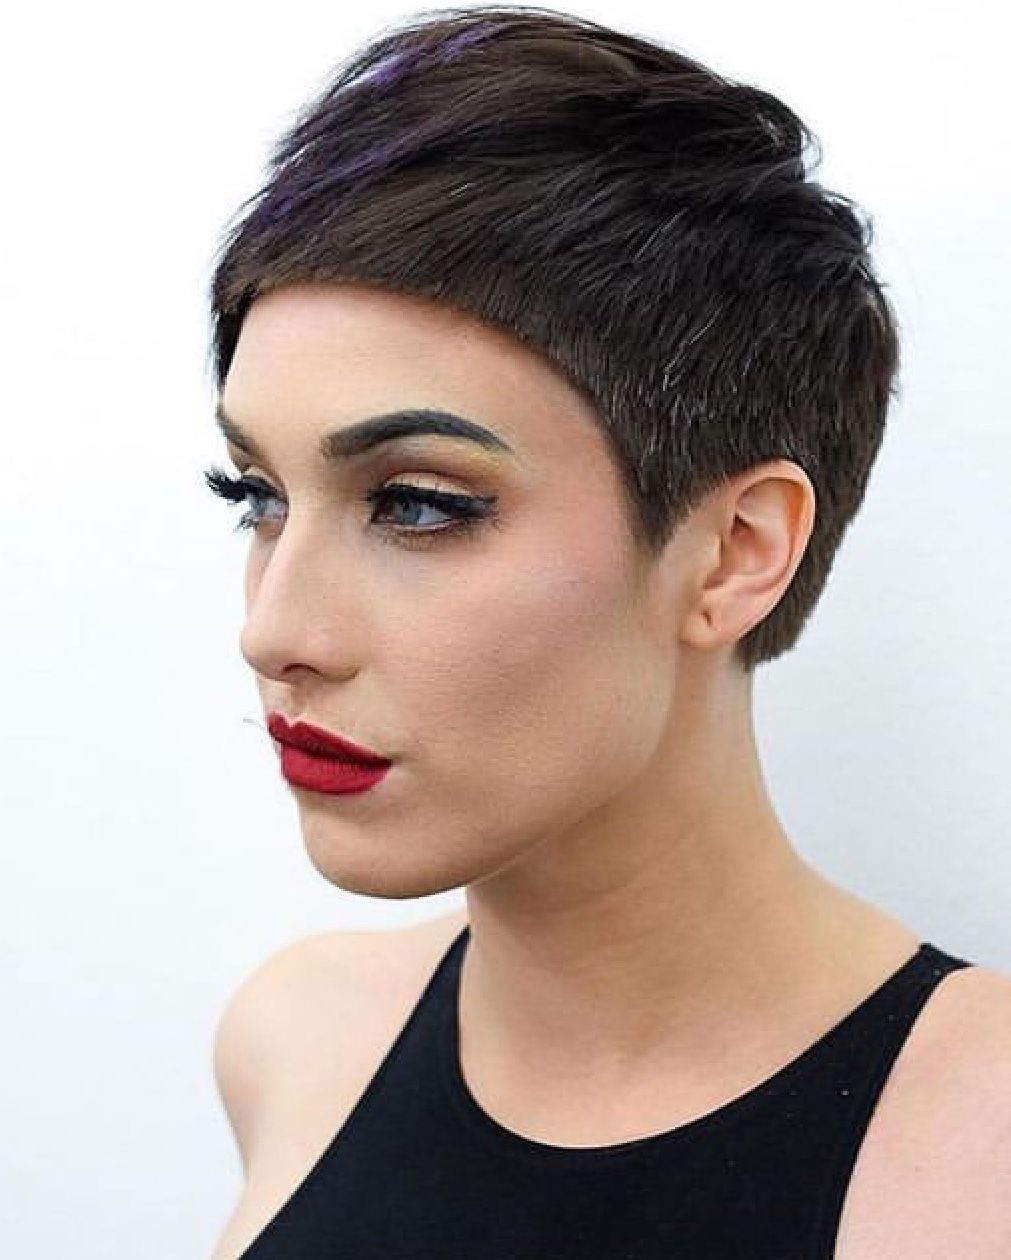 Pin by Stevie Jacobs on Pixie haircut (With images ...